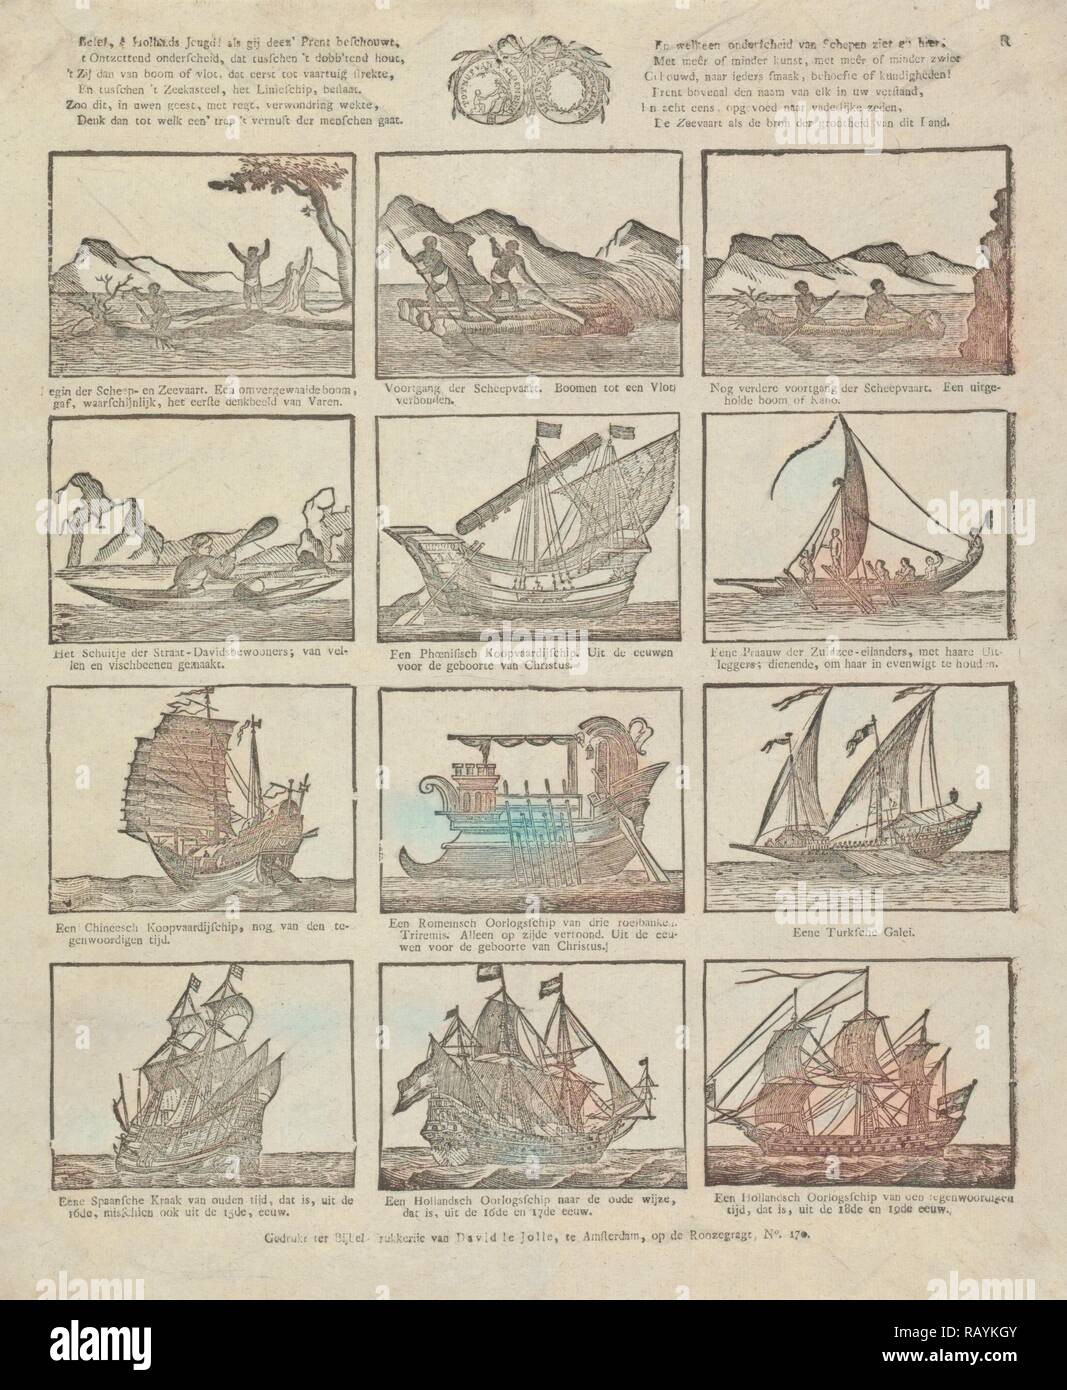 Print showing various old ships, David le Jolle, Anonymous, 1814 - c. 1820. Reimagined by Gibon. Classic art with a reimagined Stock Photo